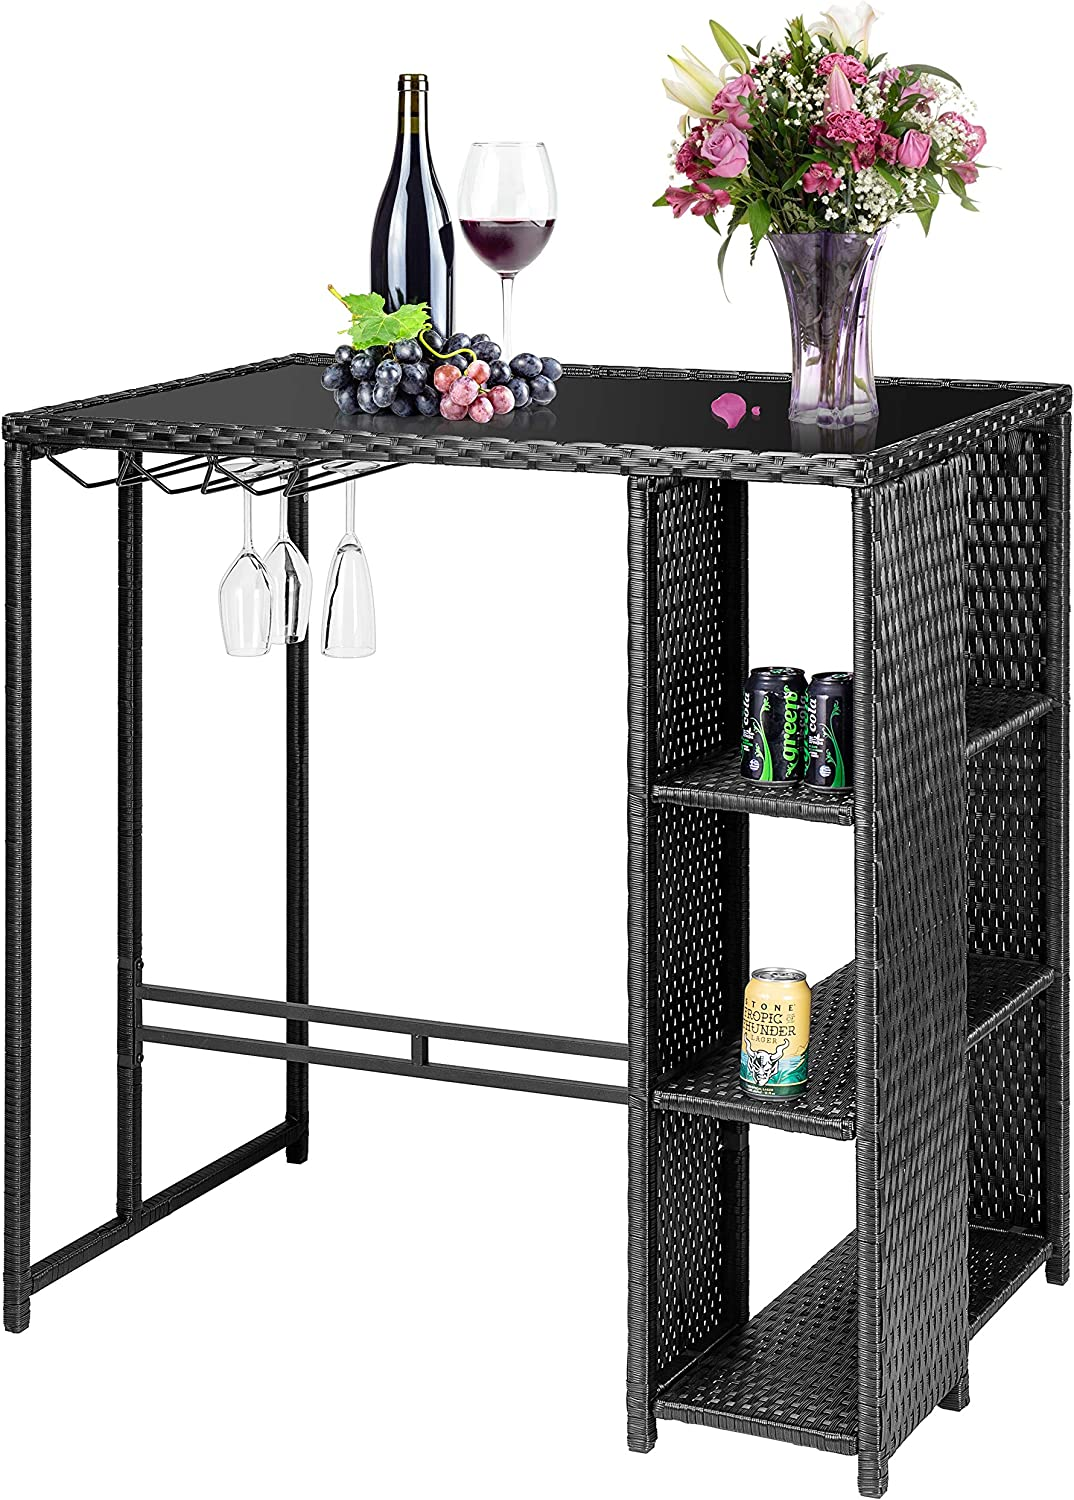 VIVOHOME Outdoor Patio Wicker Bar Table Rattan Counter Furniture with 3 Goblet Holders and 3 Storage Shelves for Lawn Garden Backyard Black: Kitchen & Dining